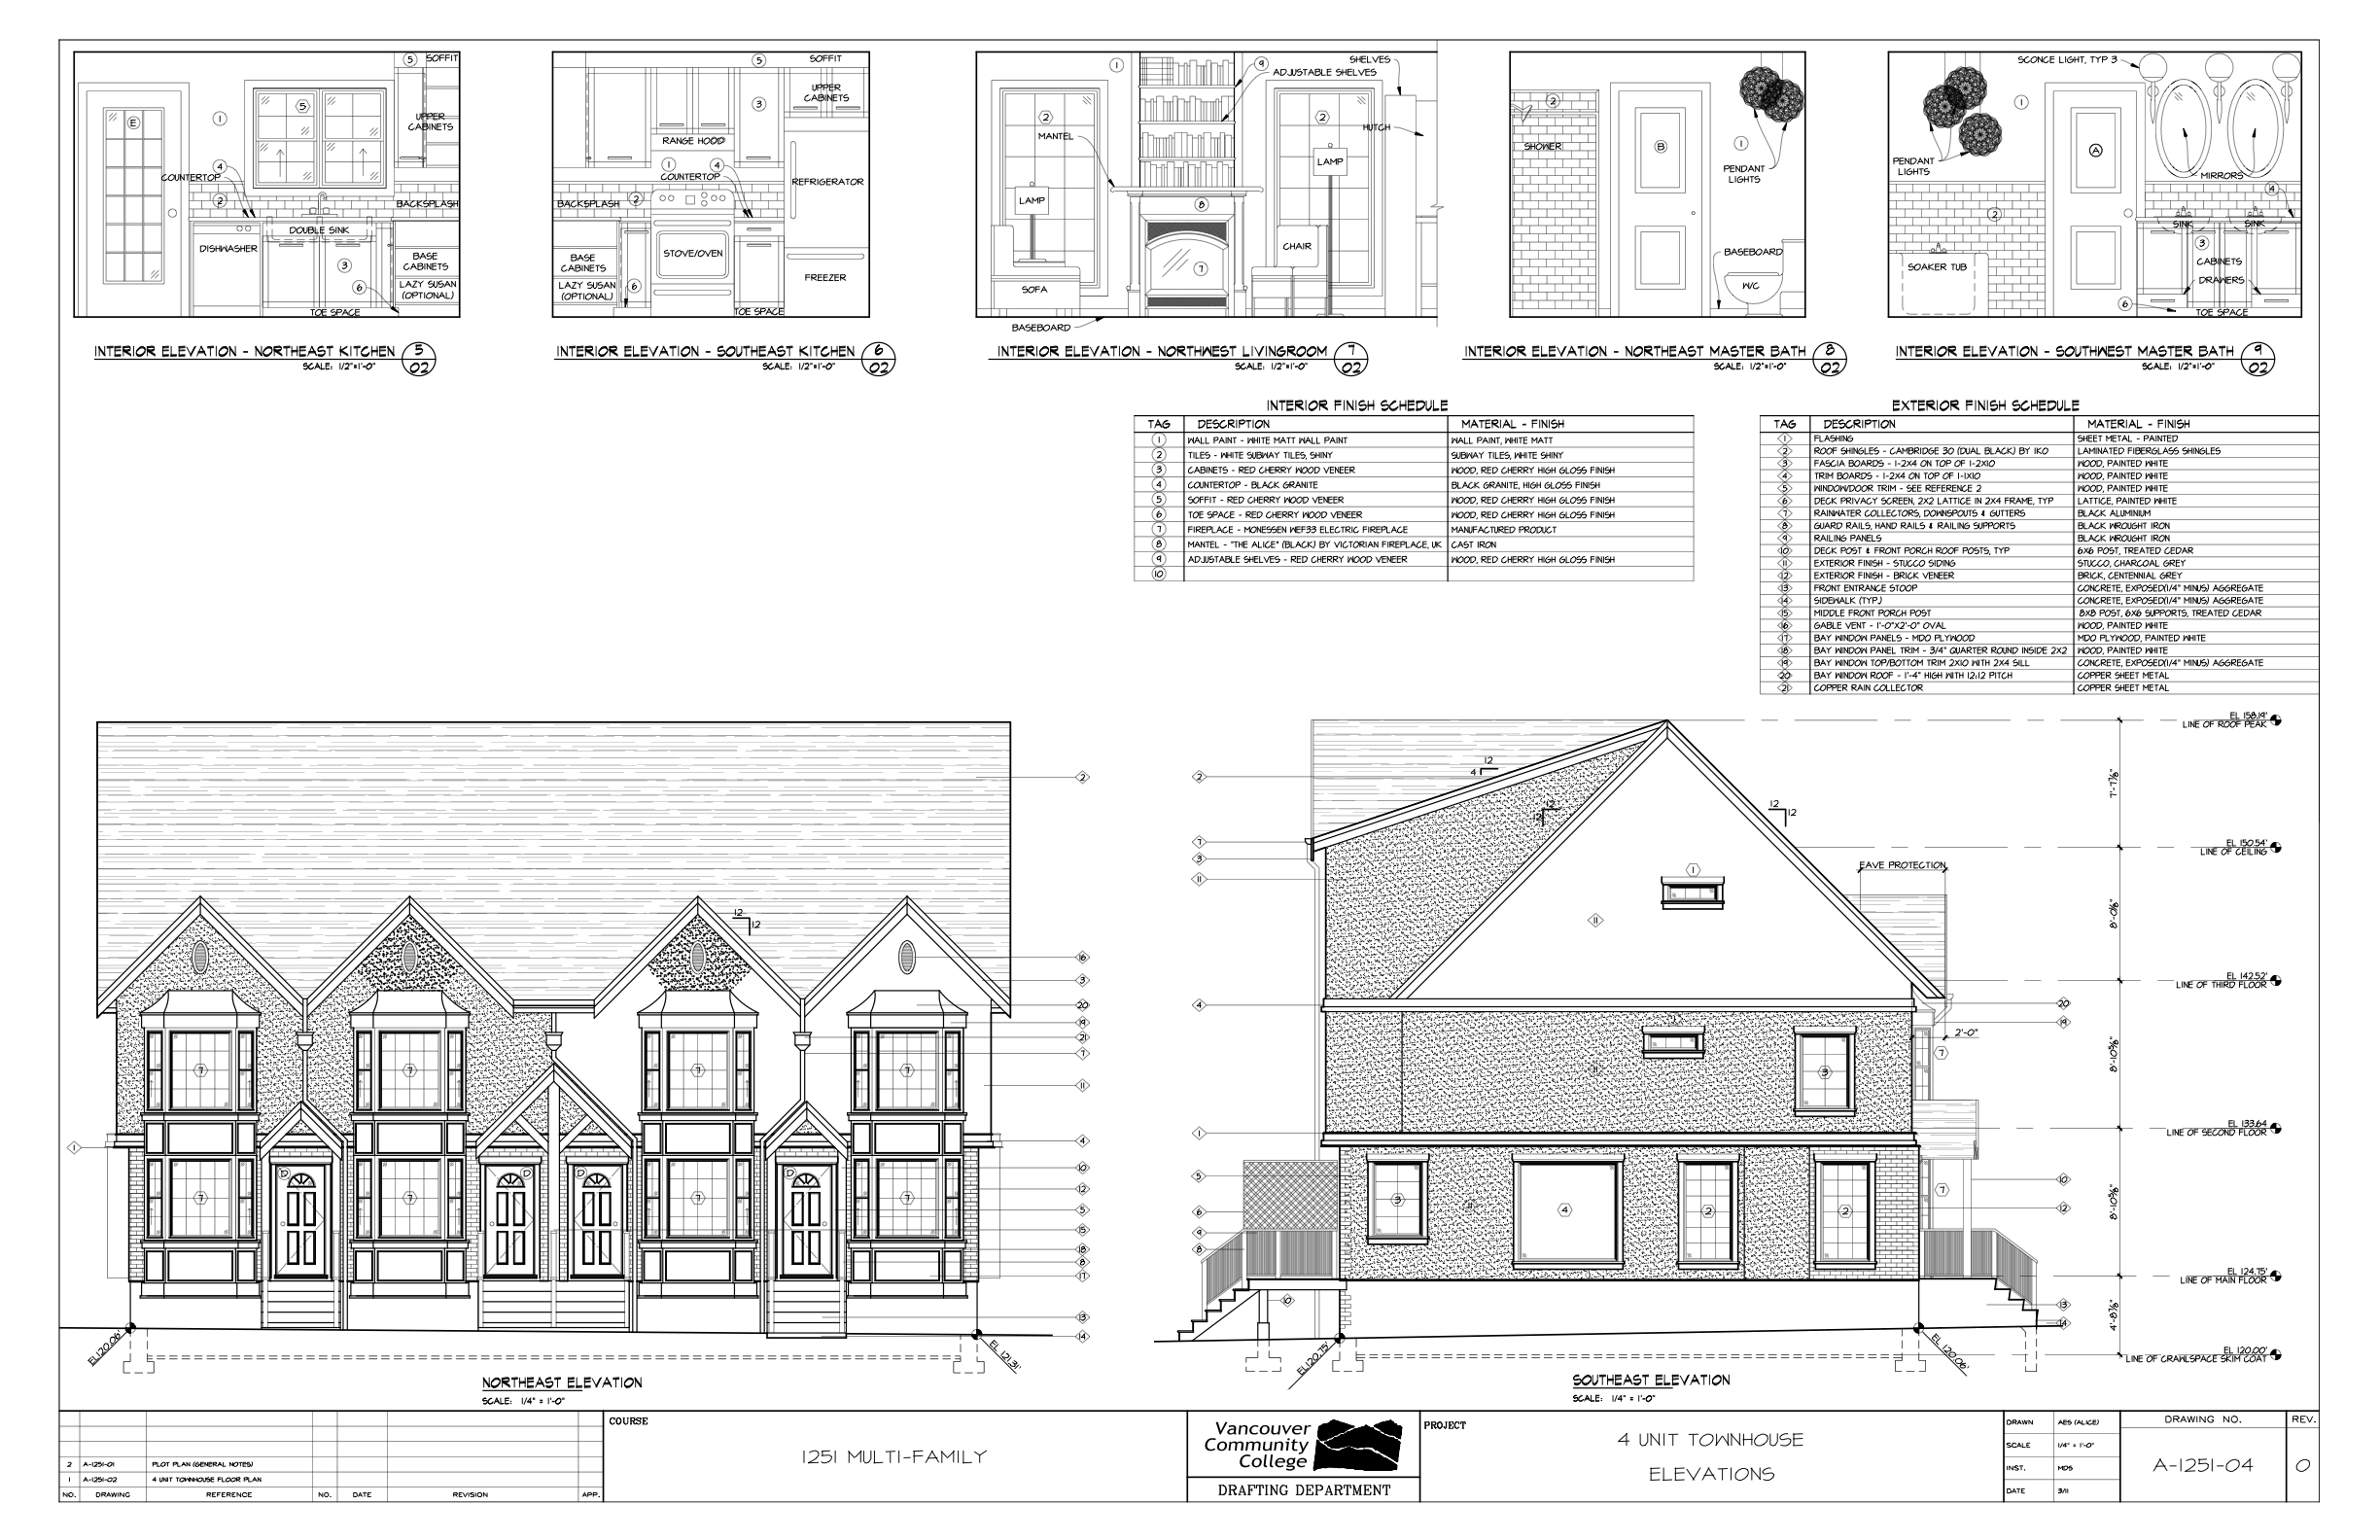 Multi family residential town house plans House building plans